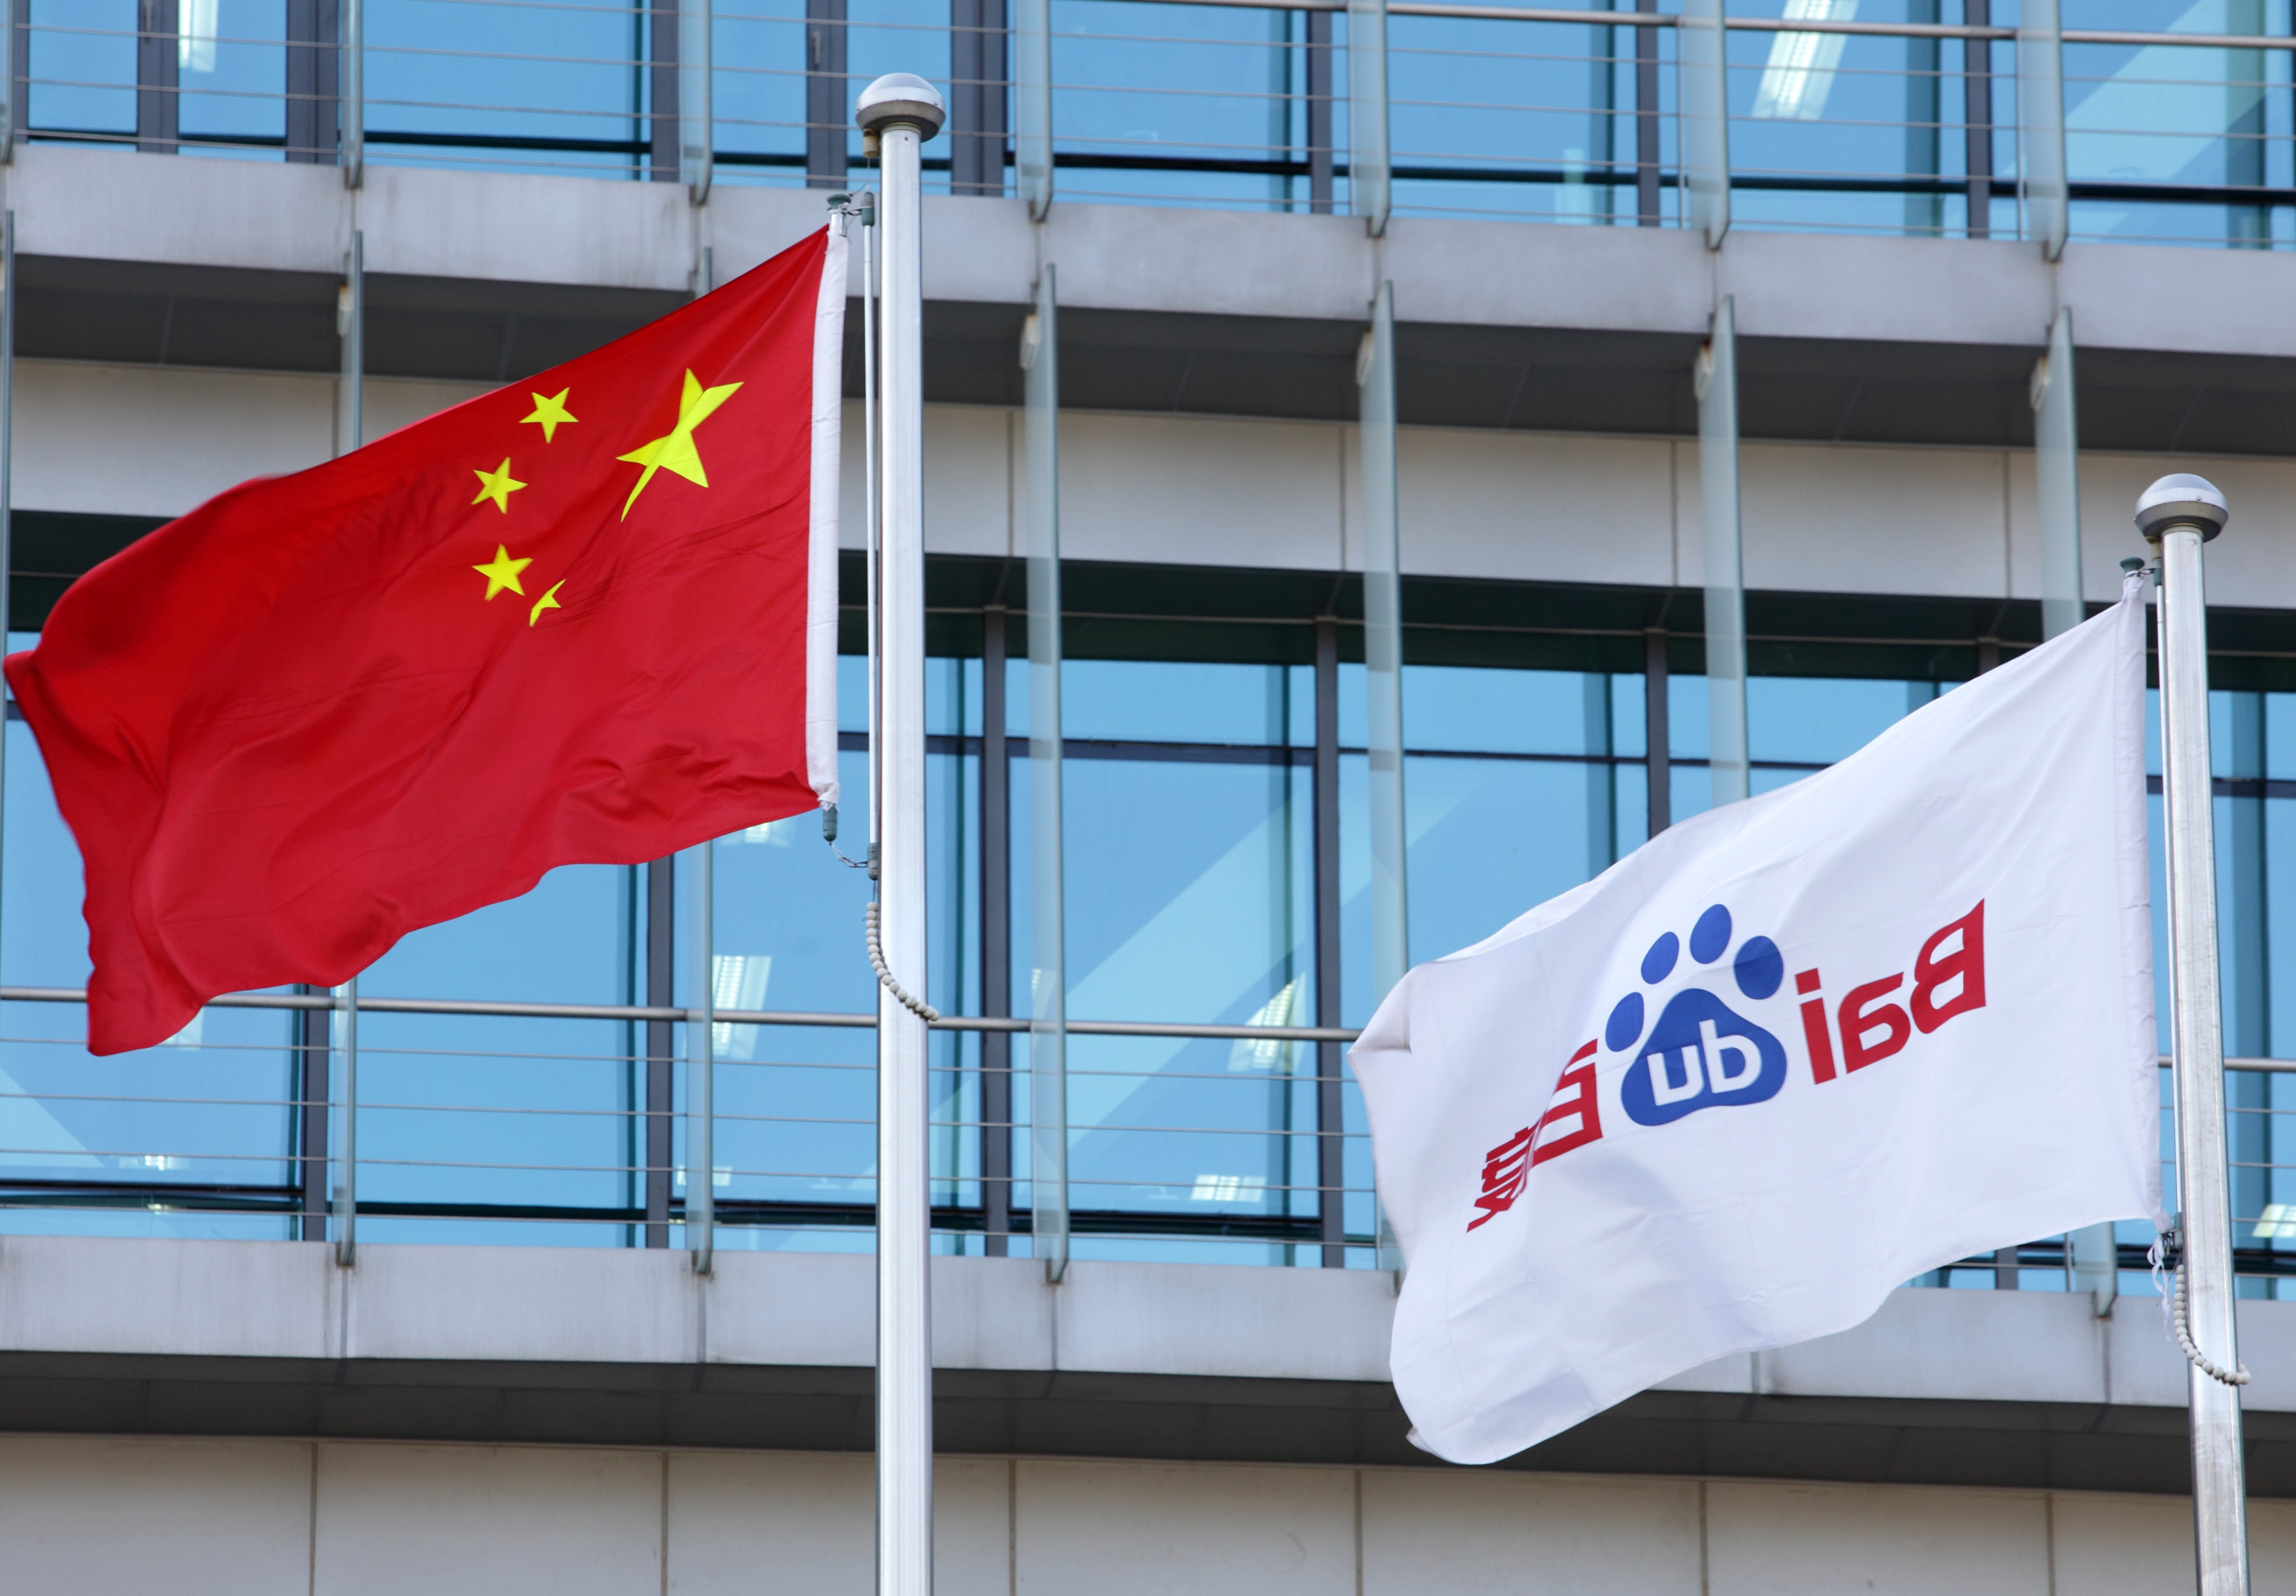 China's national flag, left, and Baidu Inc.'s corporate flag fly outside Baidu's headquarters in Beijing, China, on Monday, Nov. 12, 2012.